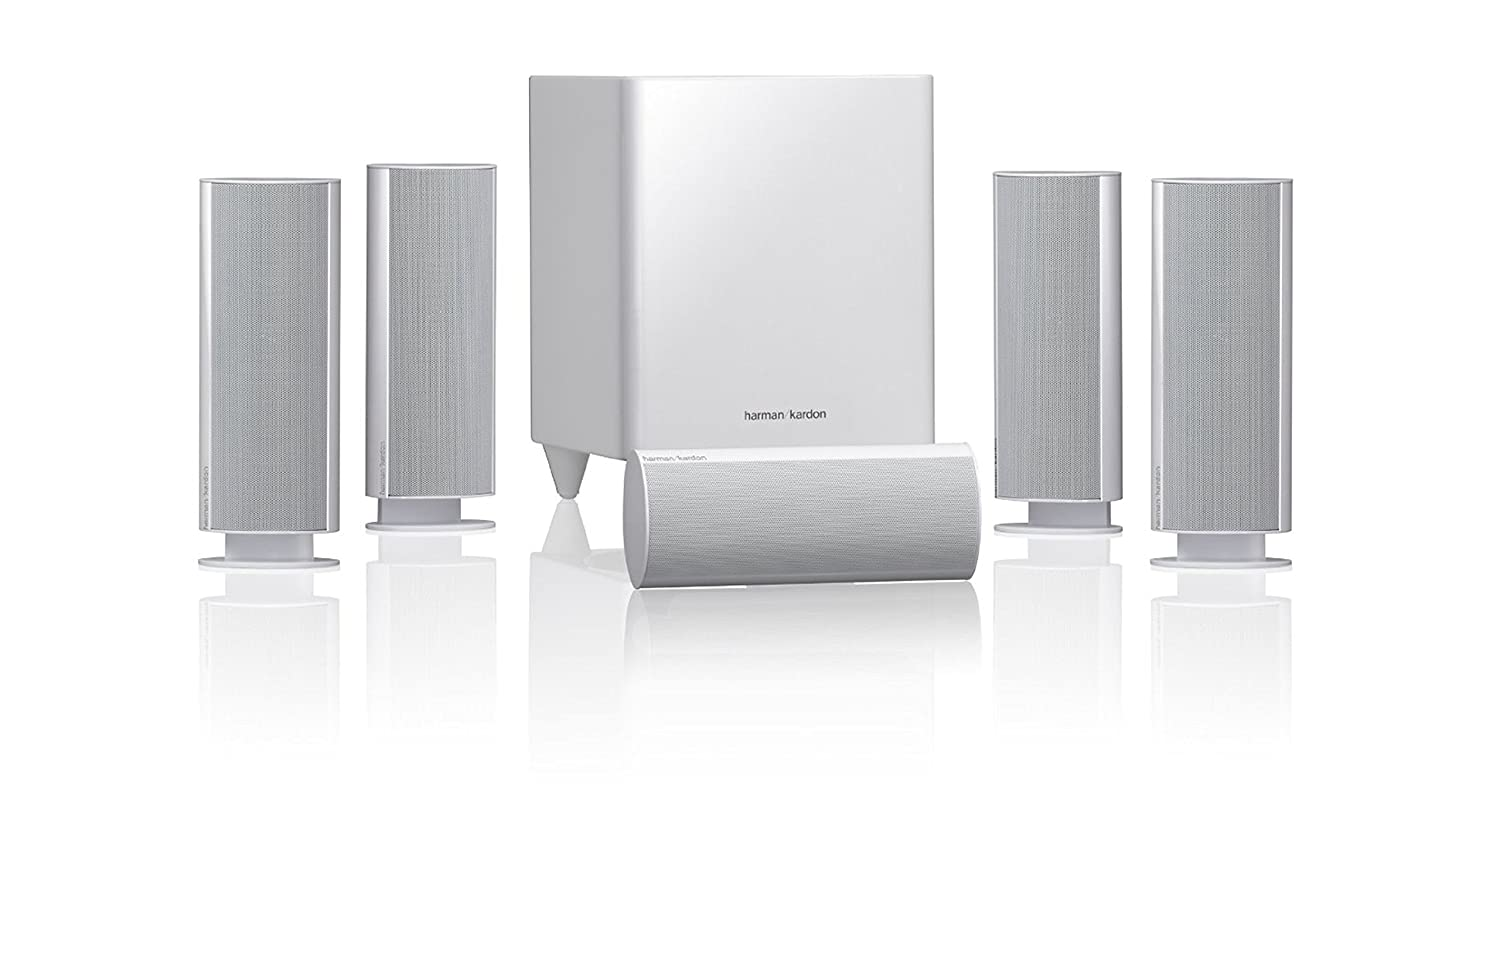 Harman Kardon HKTS 30WQ/230 Home Cinema